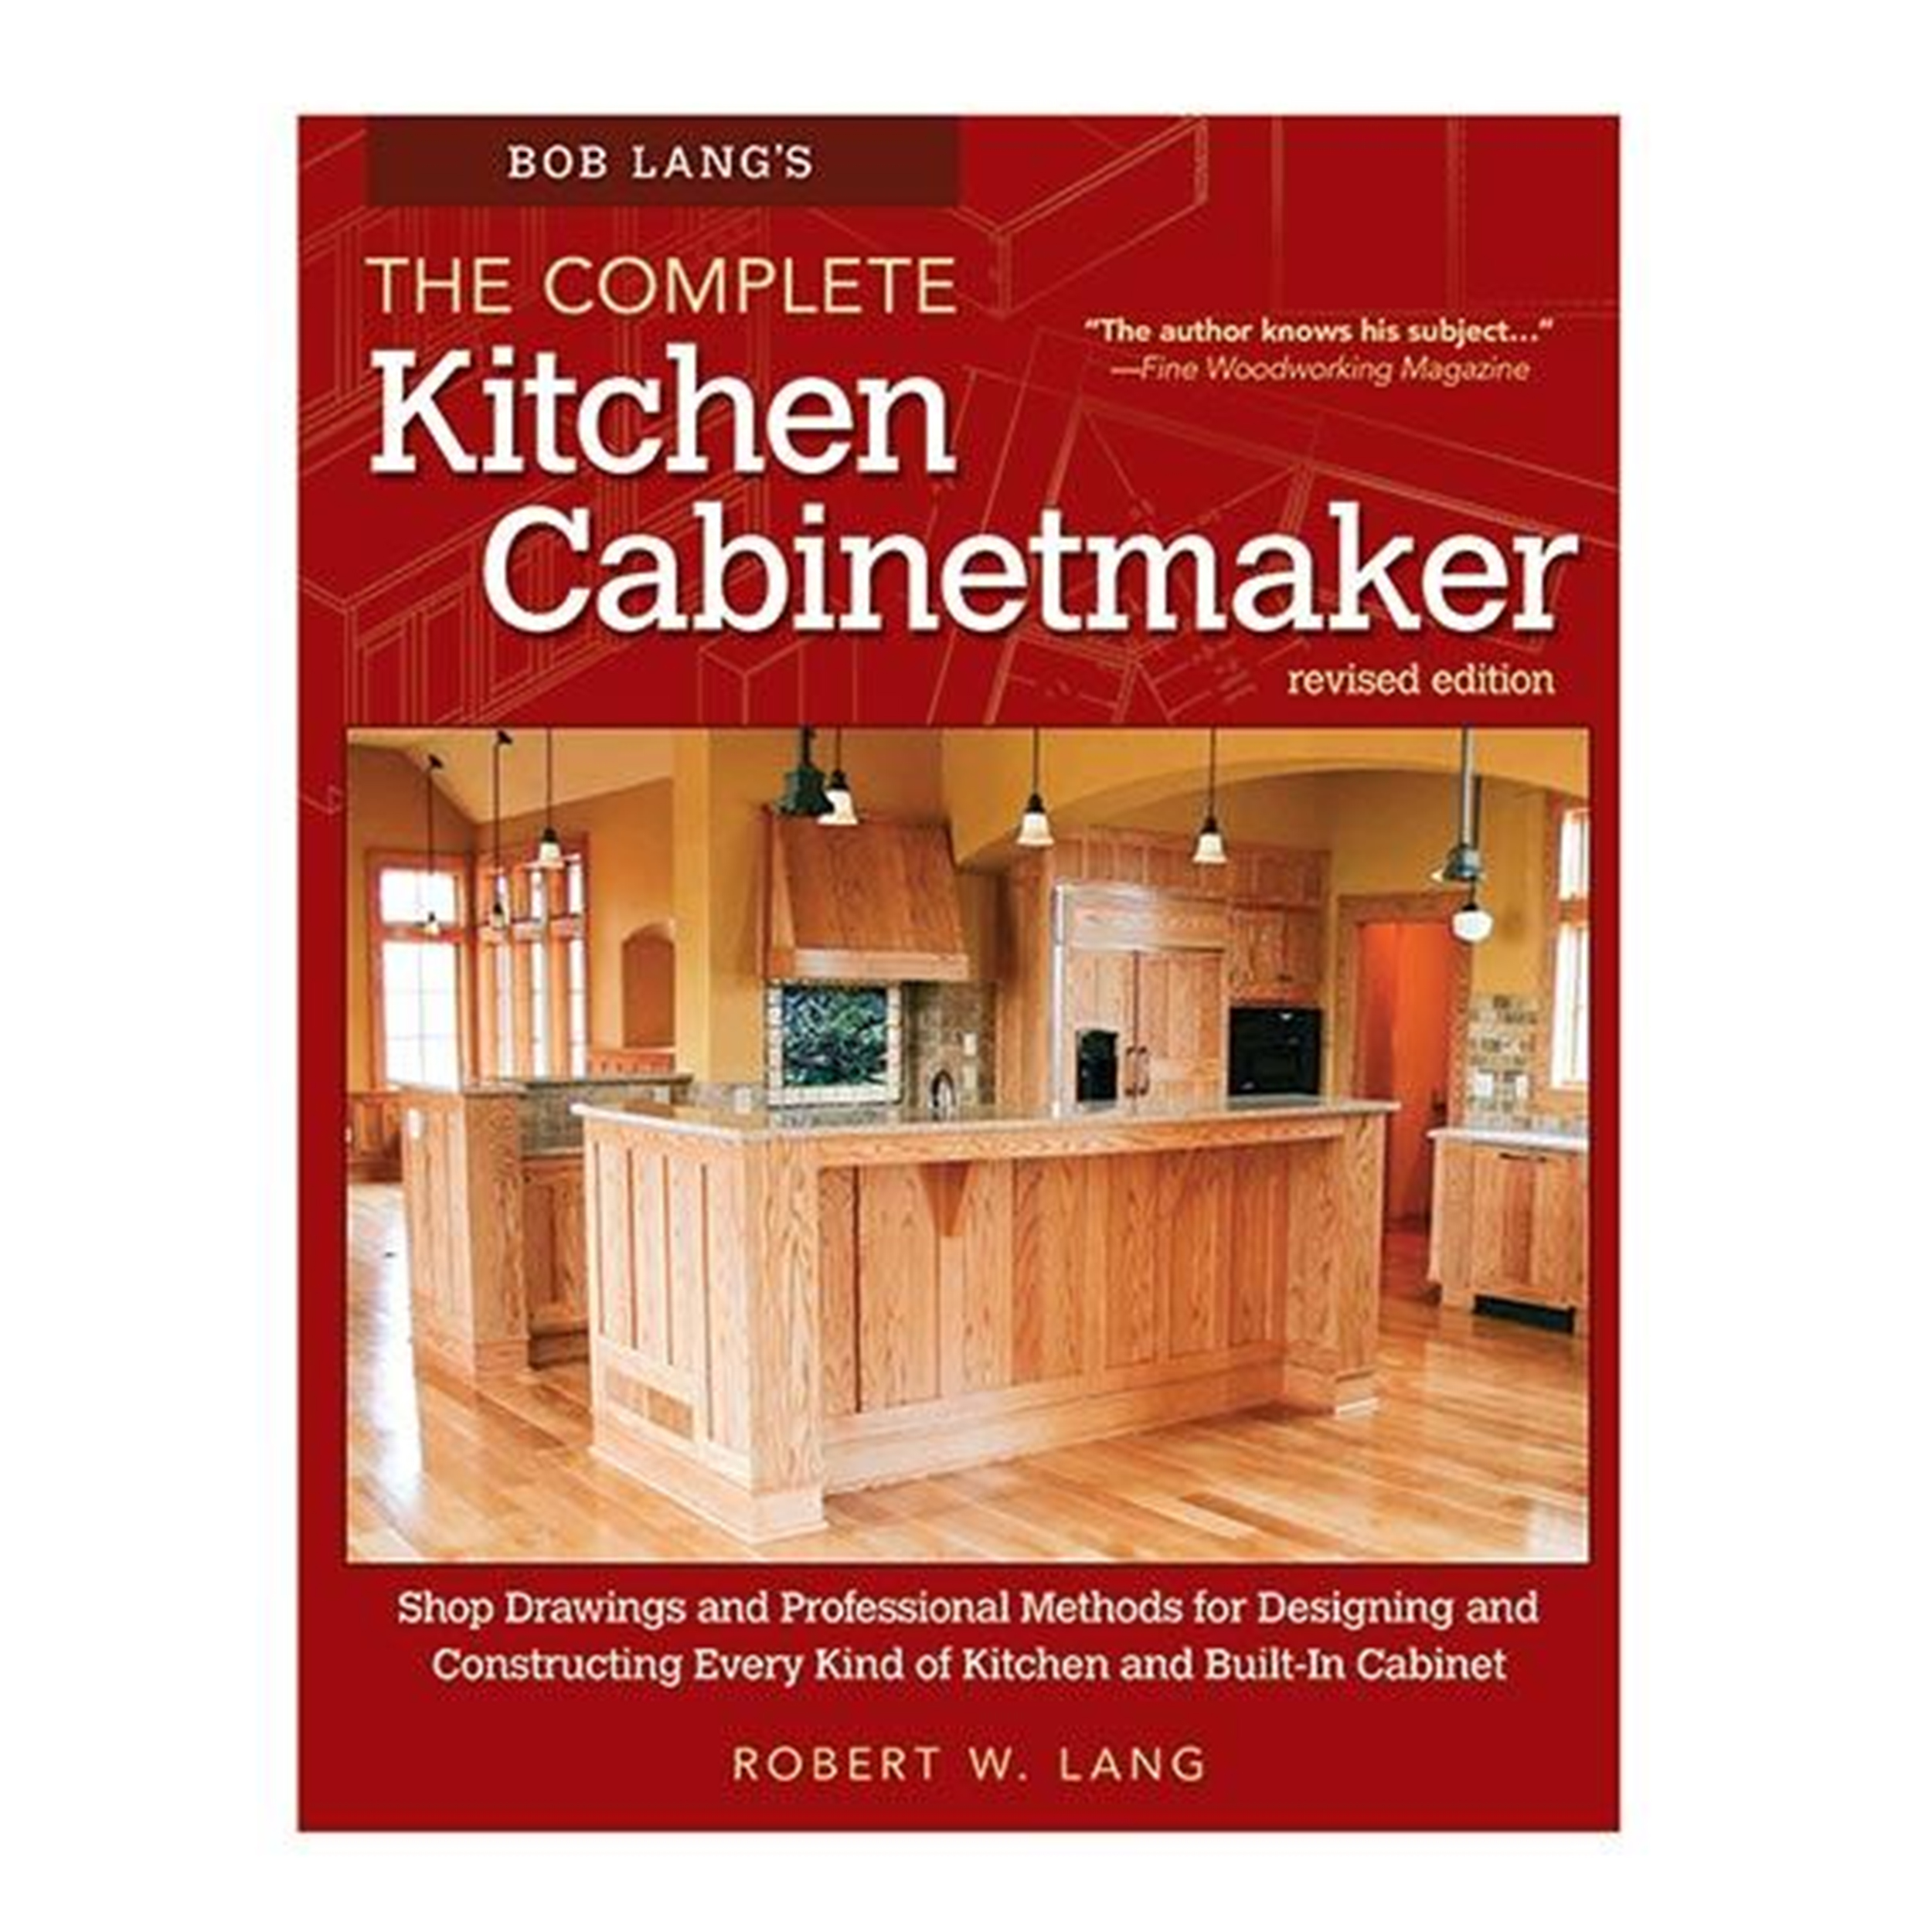 Bob Lang's The Complete Kitchen Cabinetmaker, Revised Edition